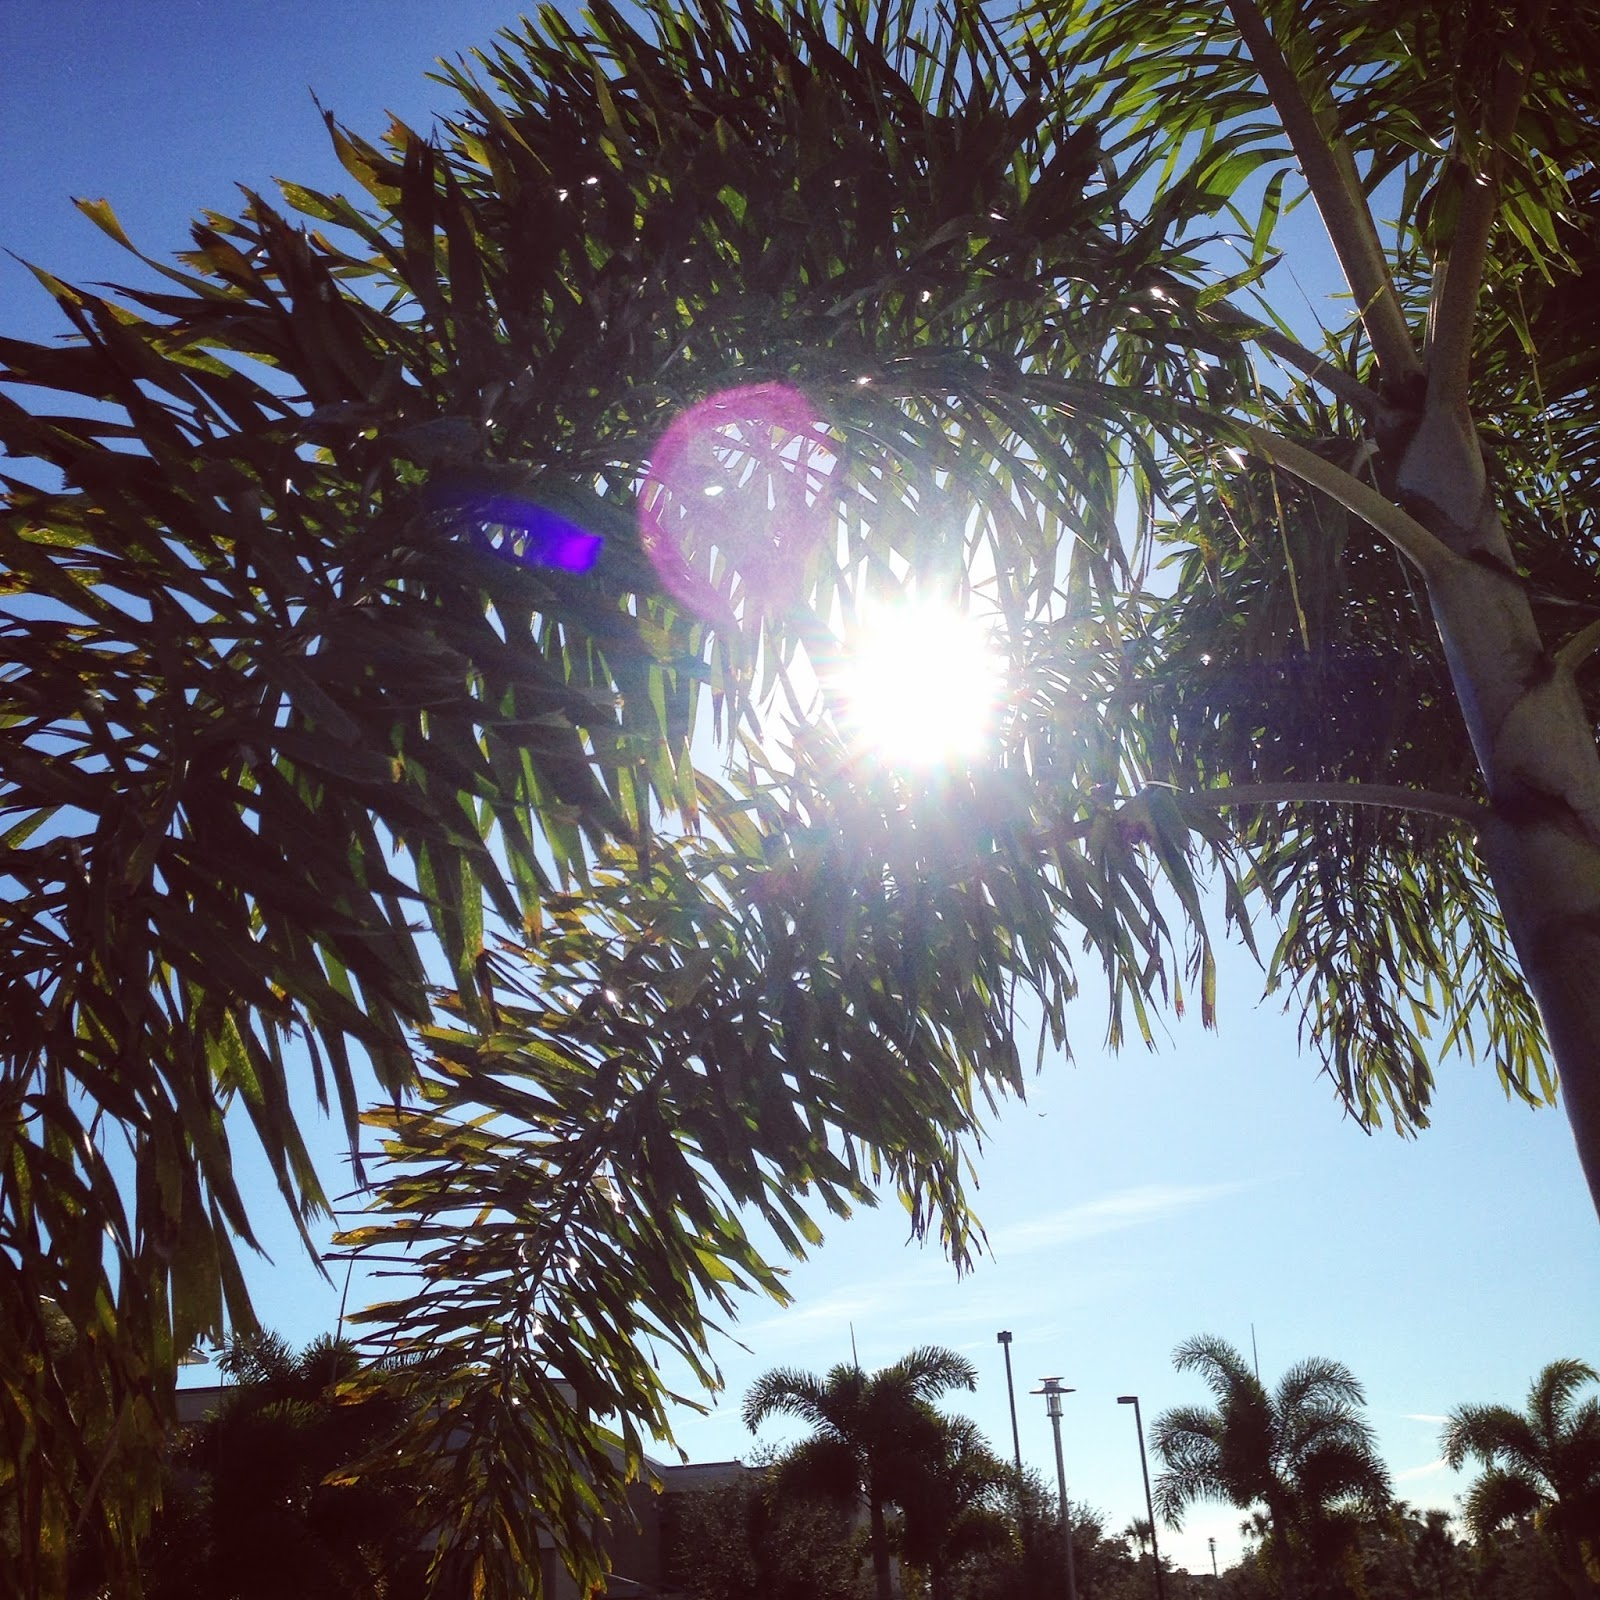 wisp + whim: An Ode to Florida : Reflecting On Our Year in St. Pete